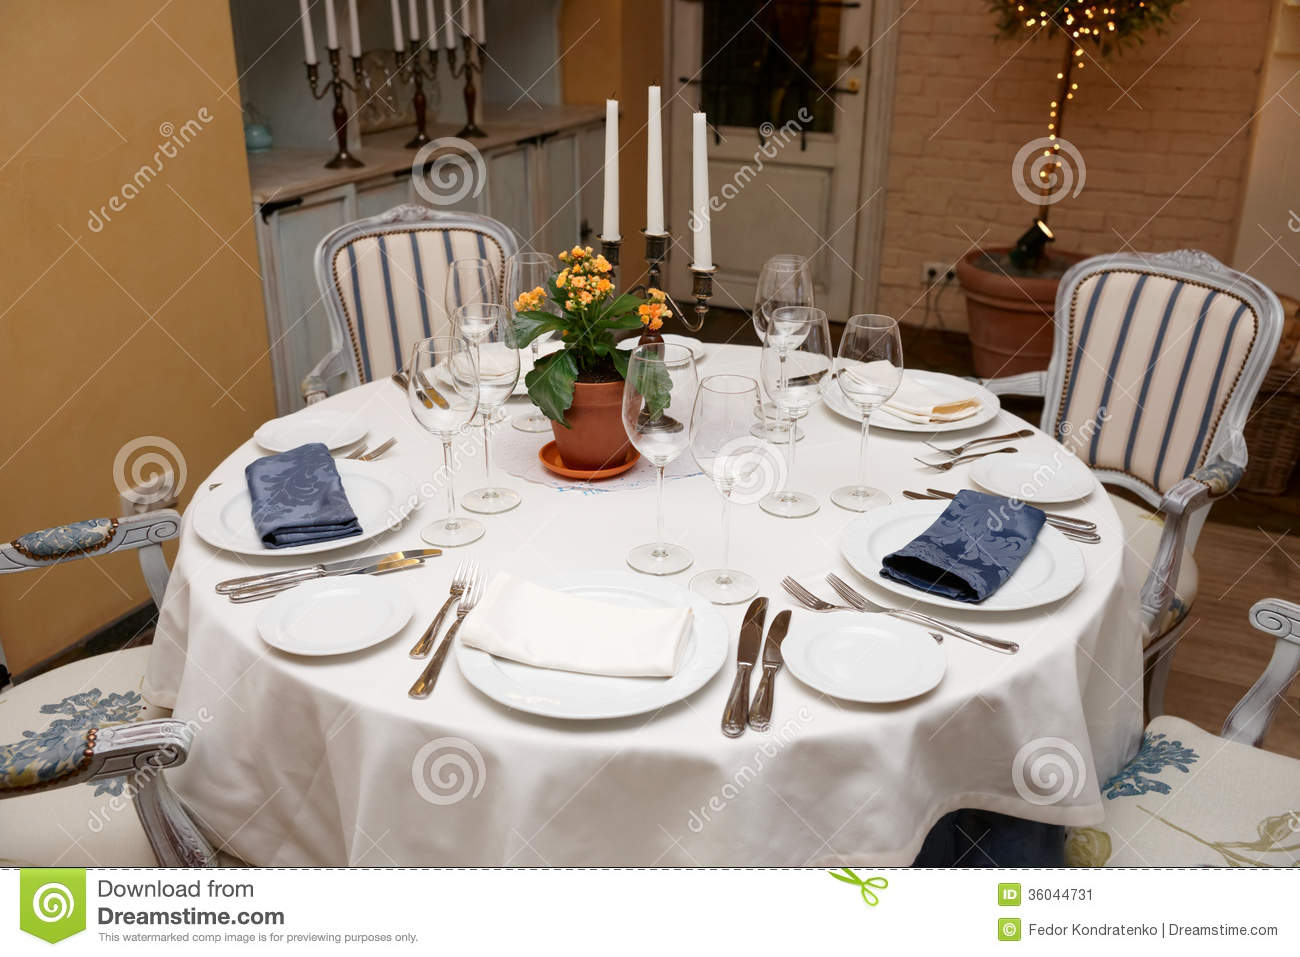 Restaurant table setting images for On the table restaurant